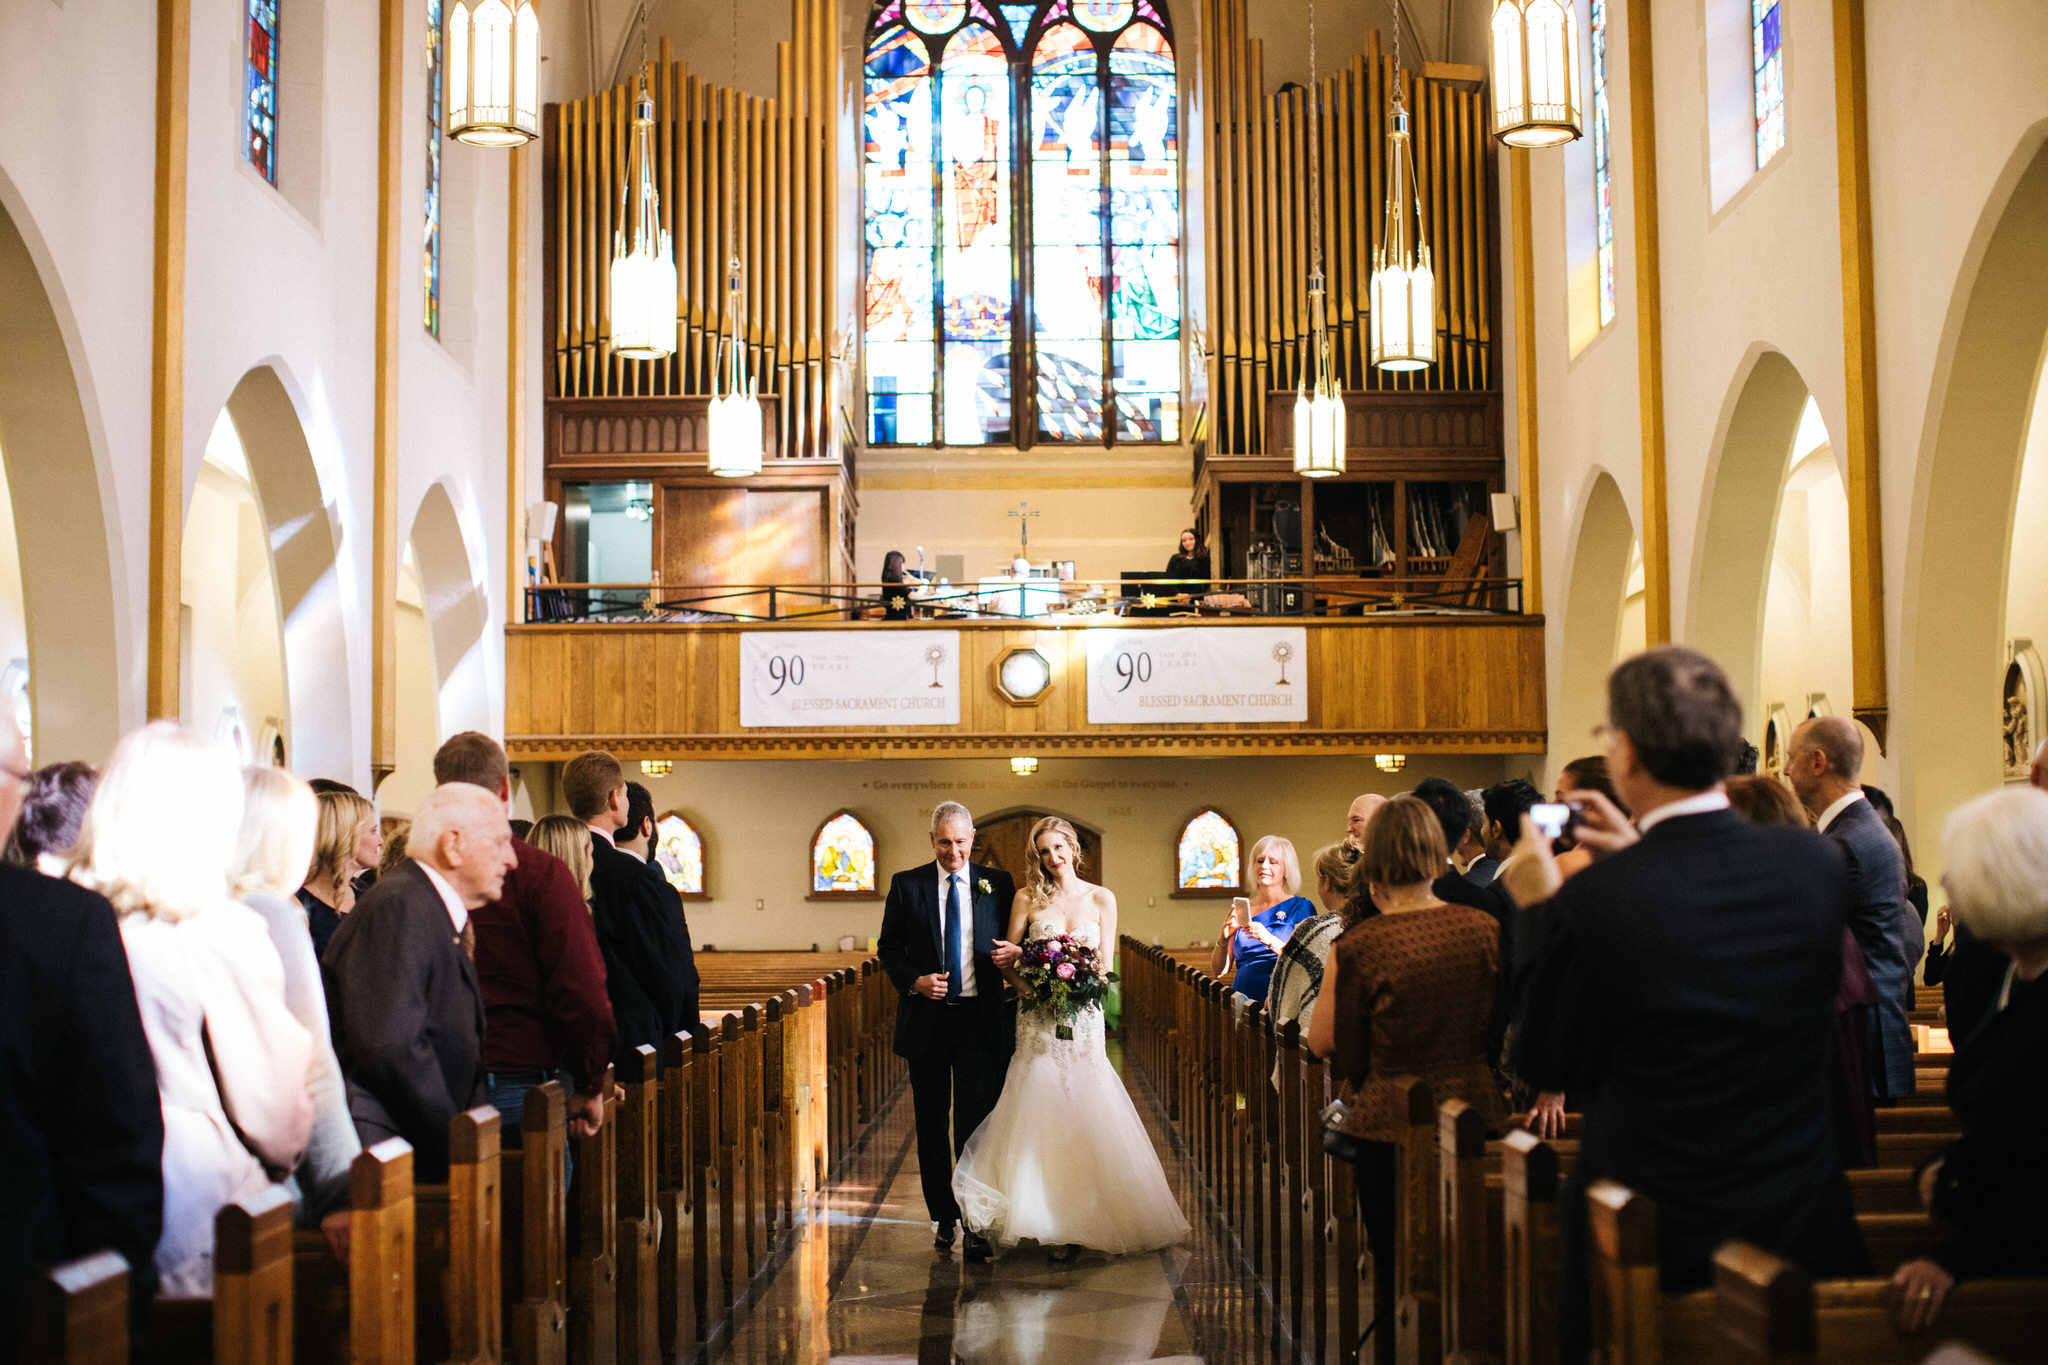 Blessed sacrament parish toronto, toronto wedding, church wedding, wedding photographer toronto, berkeley church wedding, bridal gown, walking down the aisle